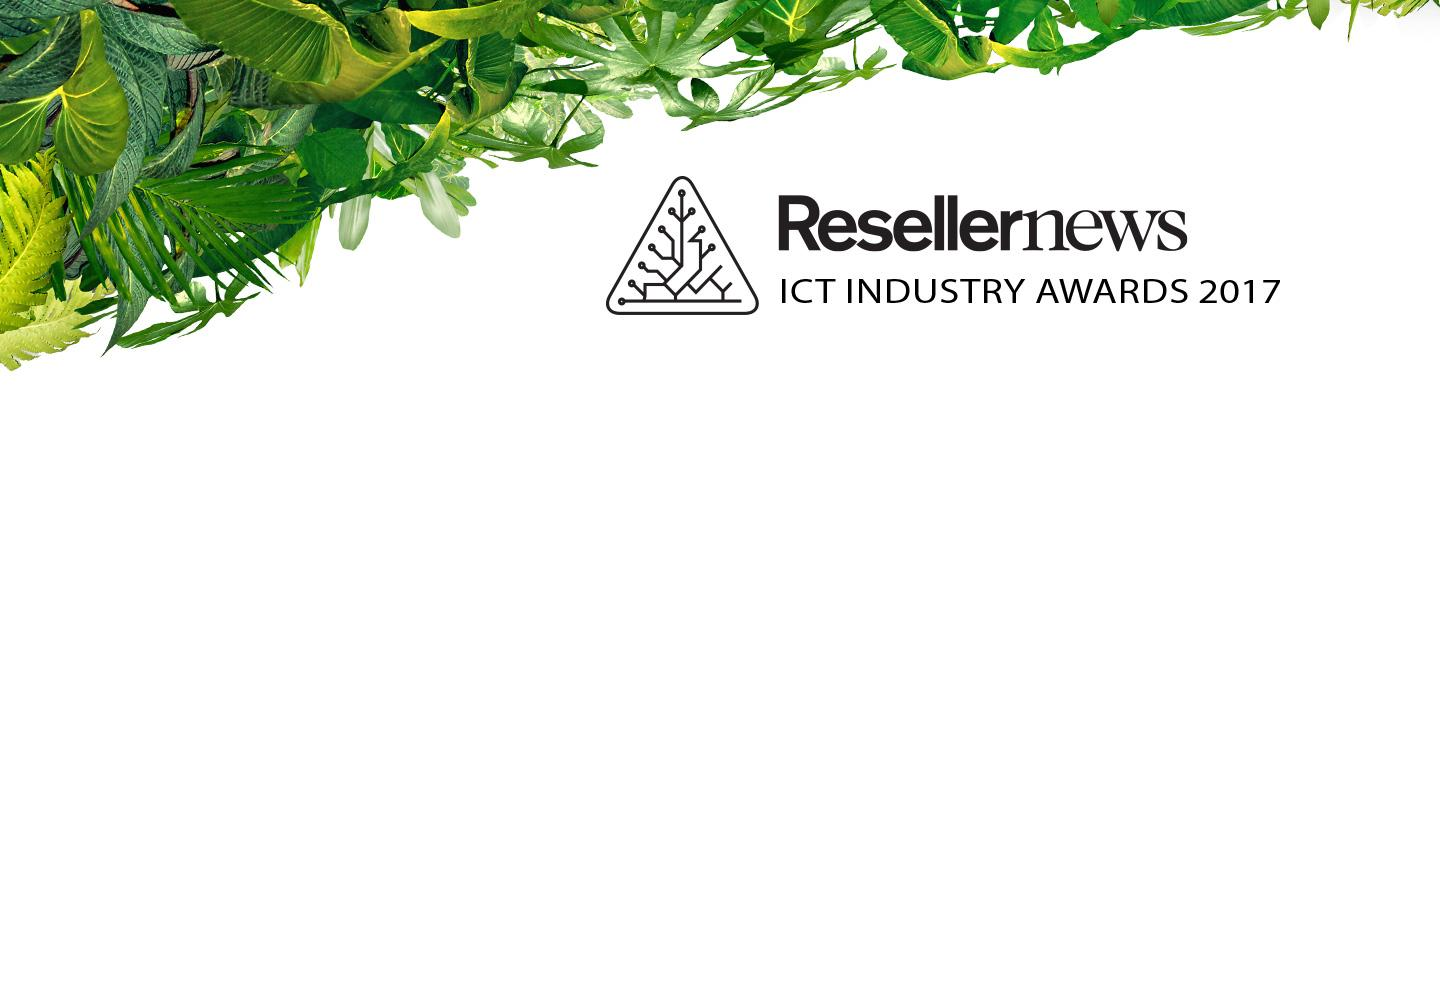 Reseller News ICT Industry Awards 2017